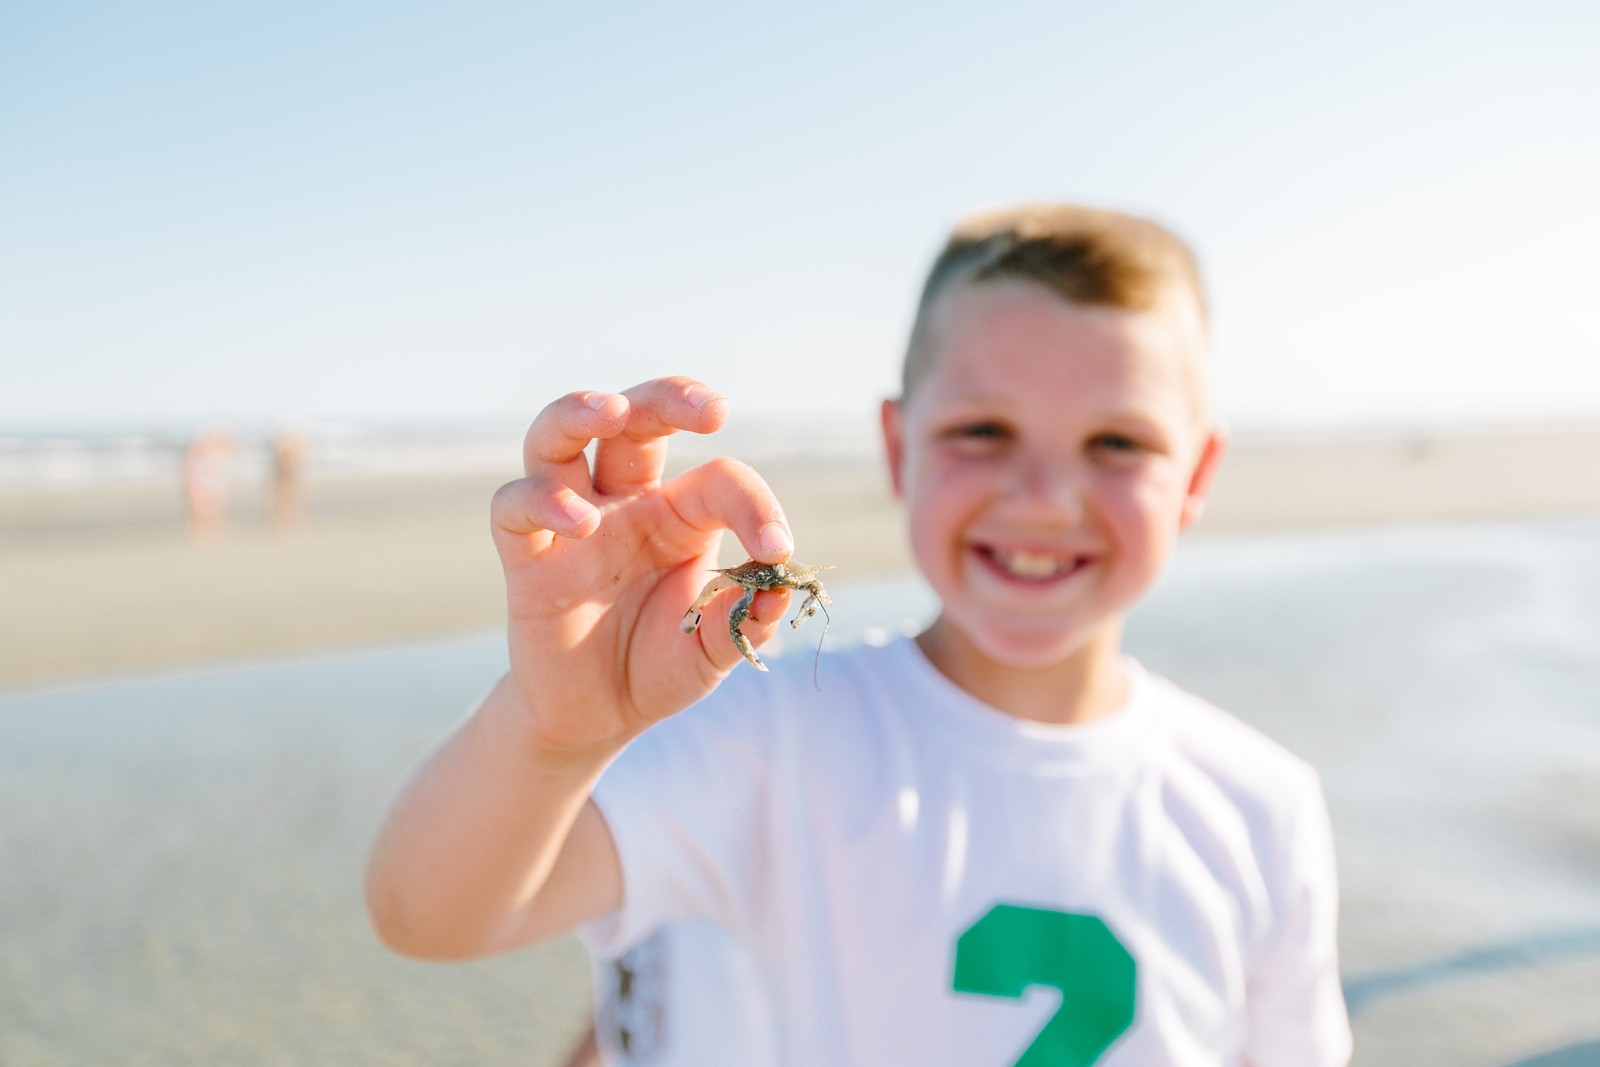 Hermit Crab? Or? Either way, an exciting discovery!